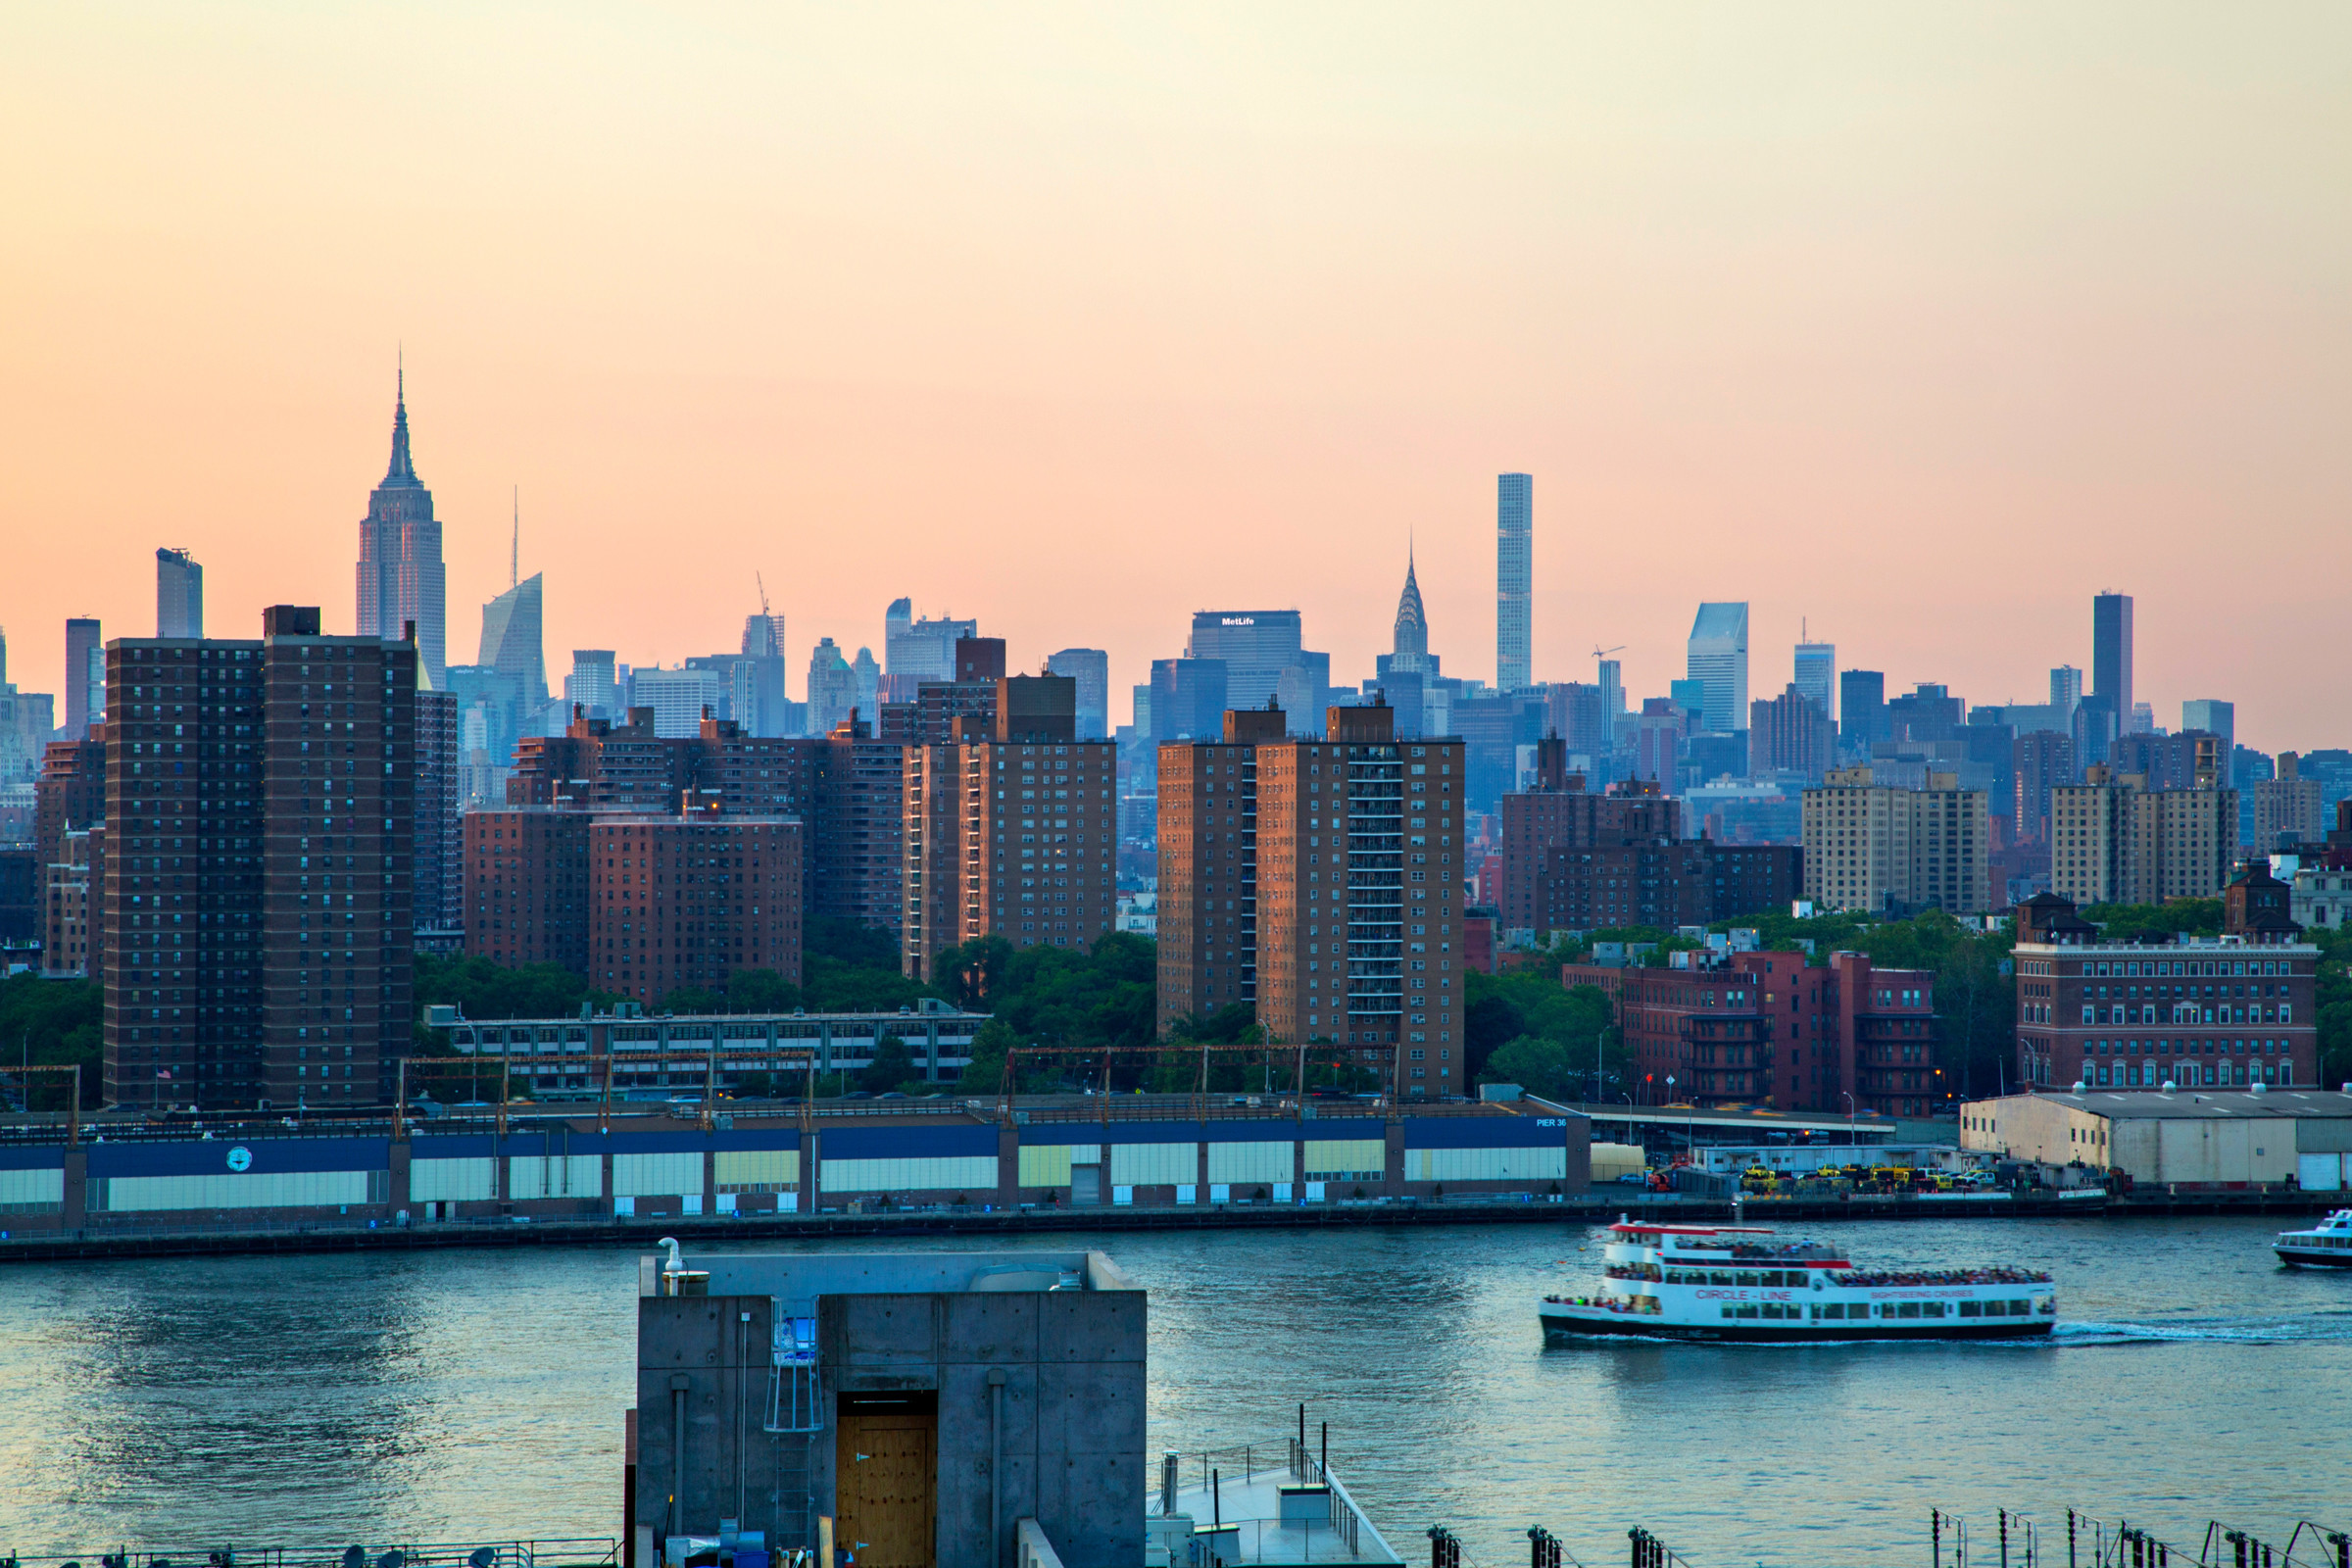 Rooftop views: Manhattan skyline